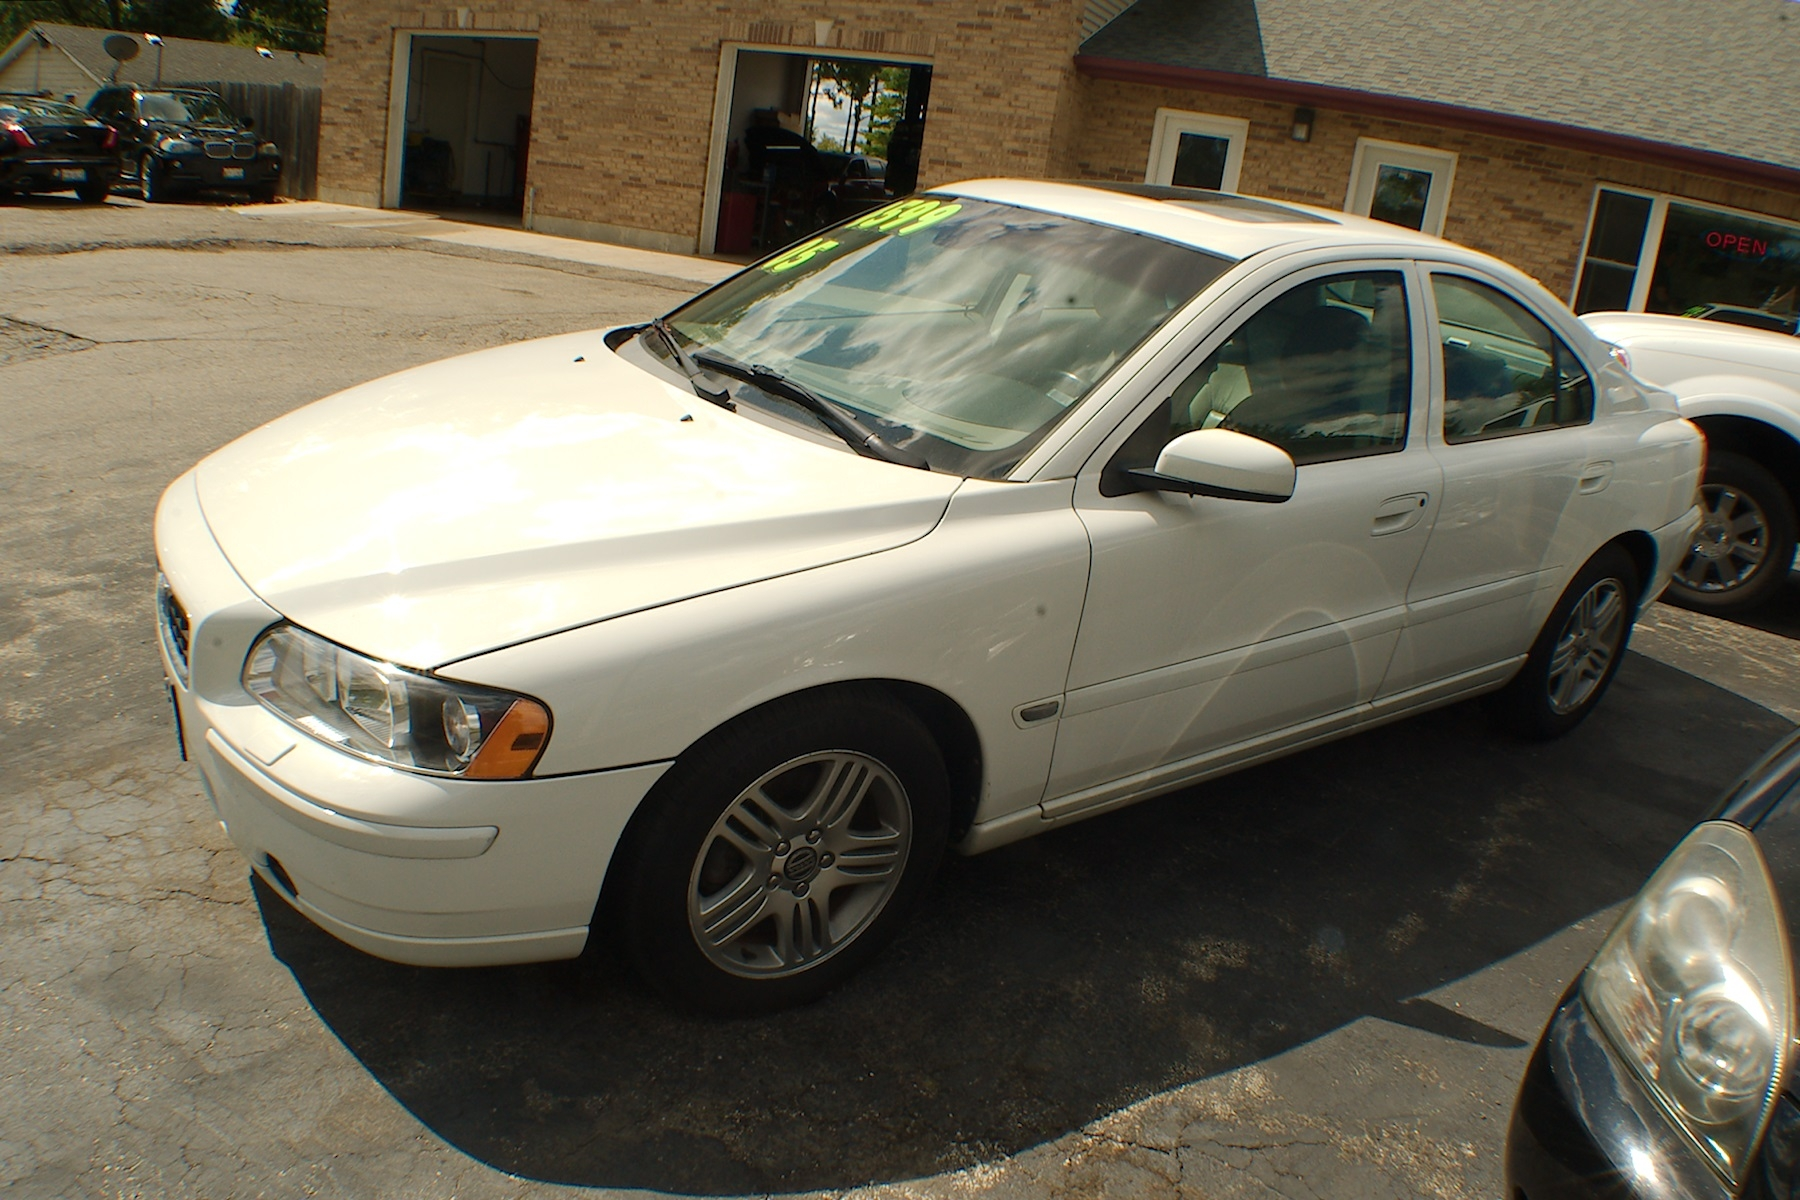 2005 Volvo S60 White Sedan Dodds Used Car Sale Antioch Zion Waukegan Lake County Illinois